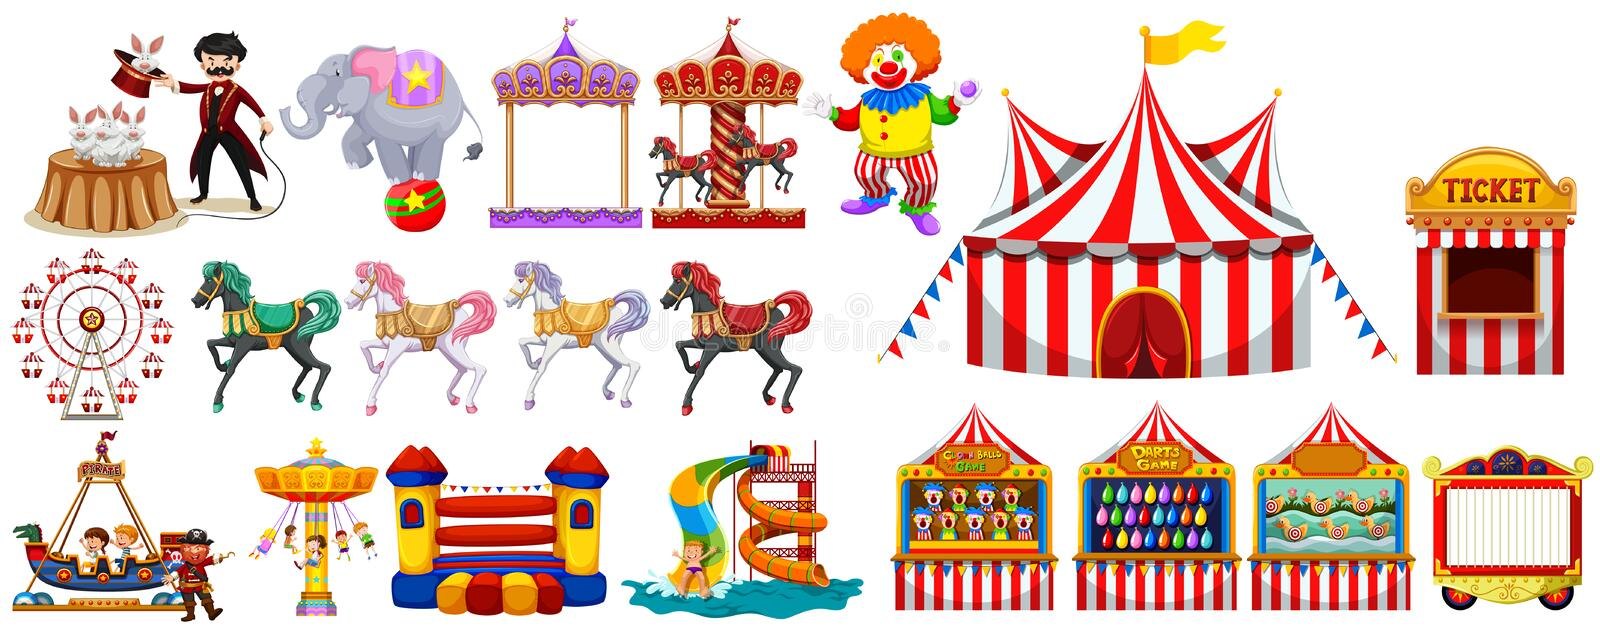 Different objects from the circus royalty free illustration